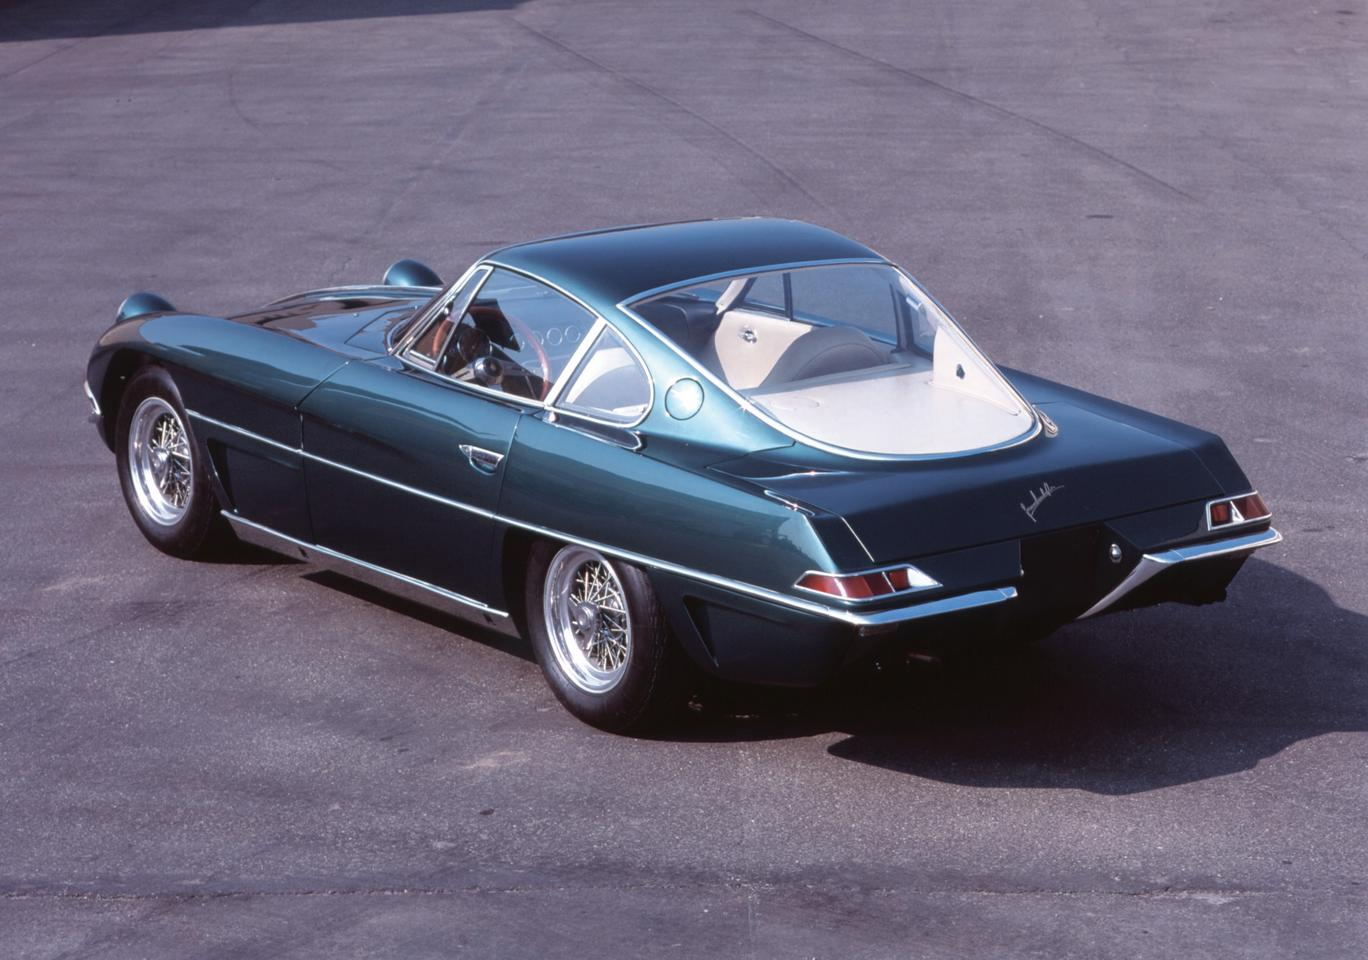 The 350 GTV, first of the first Lamborghinis, was introduced to the world at the Turin Auto Show in the fall of 1963